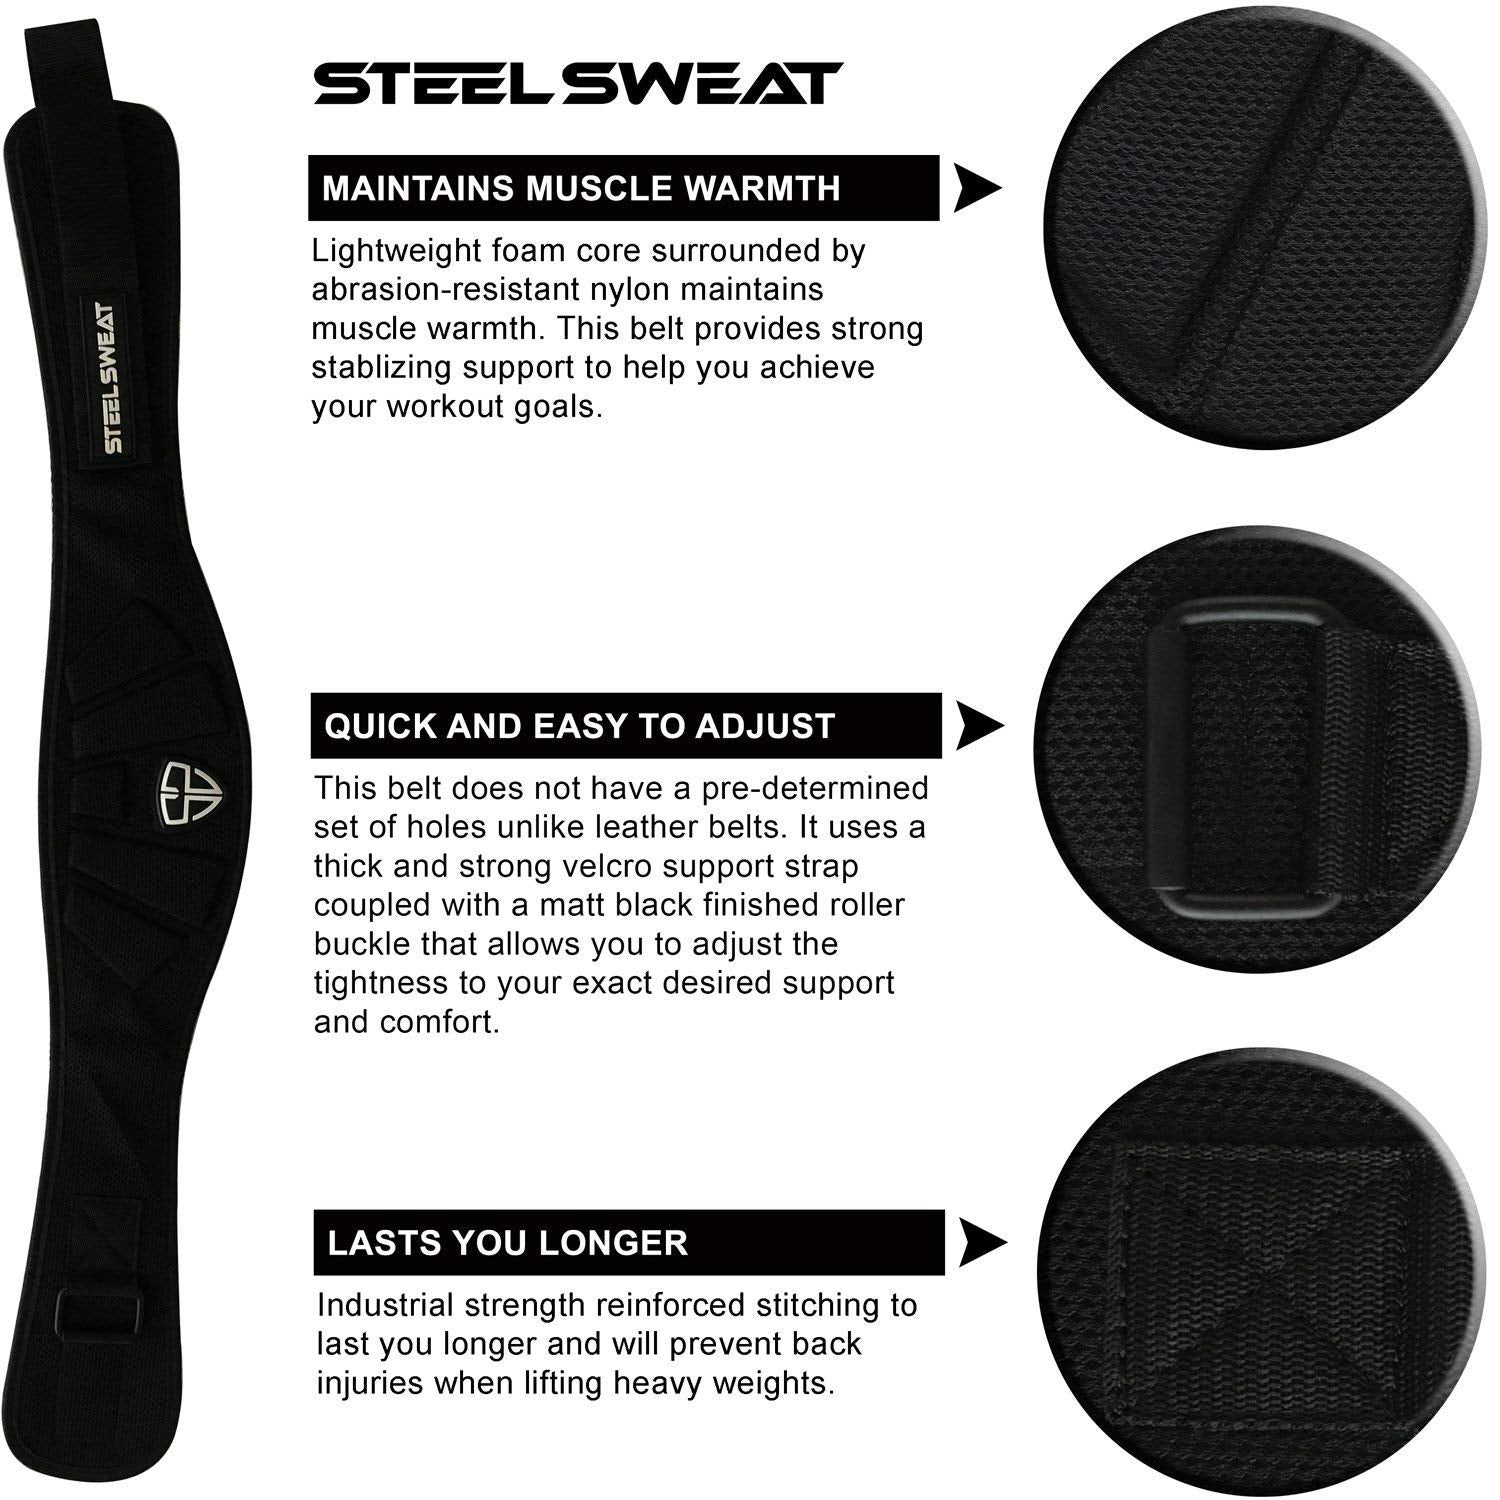 Steel Sweat Weight Lifting Belt - Nylon 6-inch Firm & Comfortable Back Support, Best for Workouts at The Gym, Weightlifting or Crossfit. Easily Adjustable MAXE Black XXL